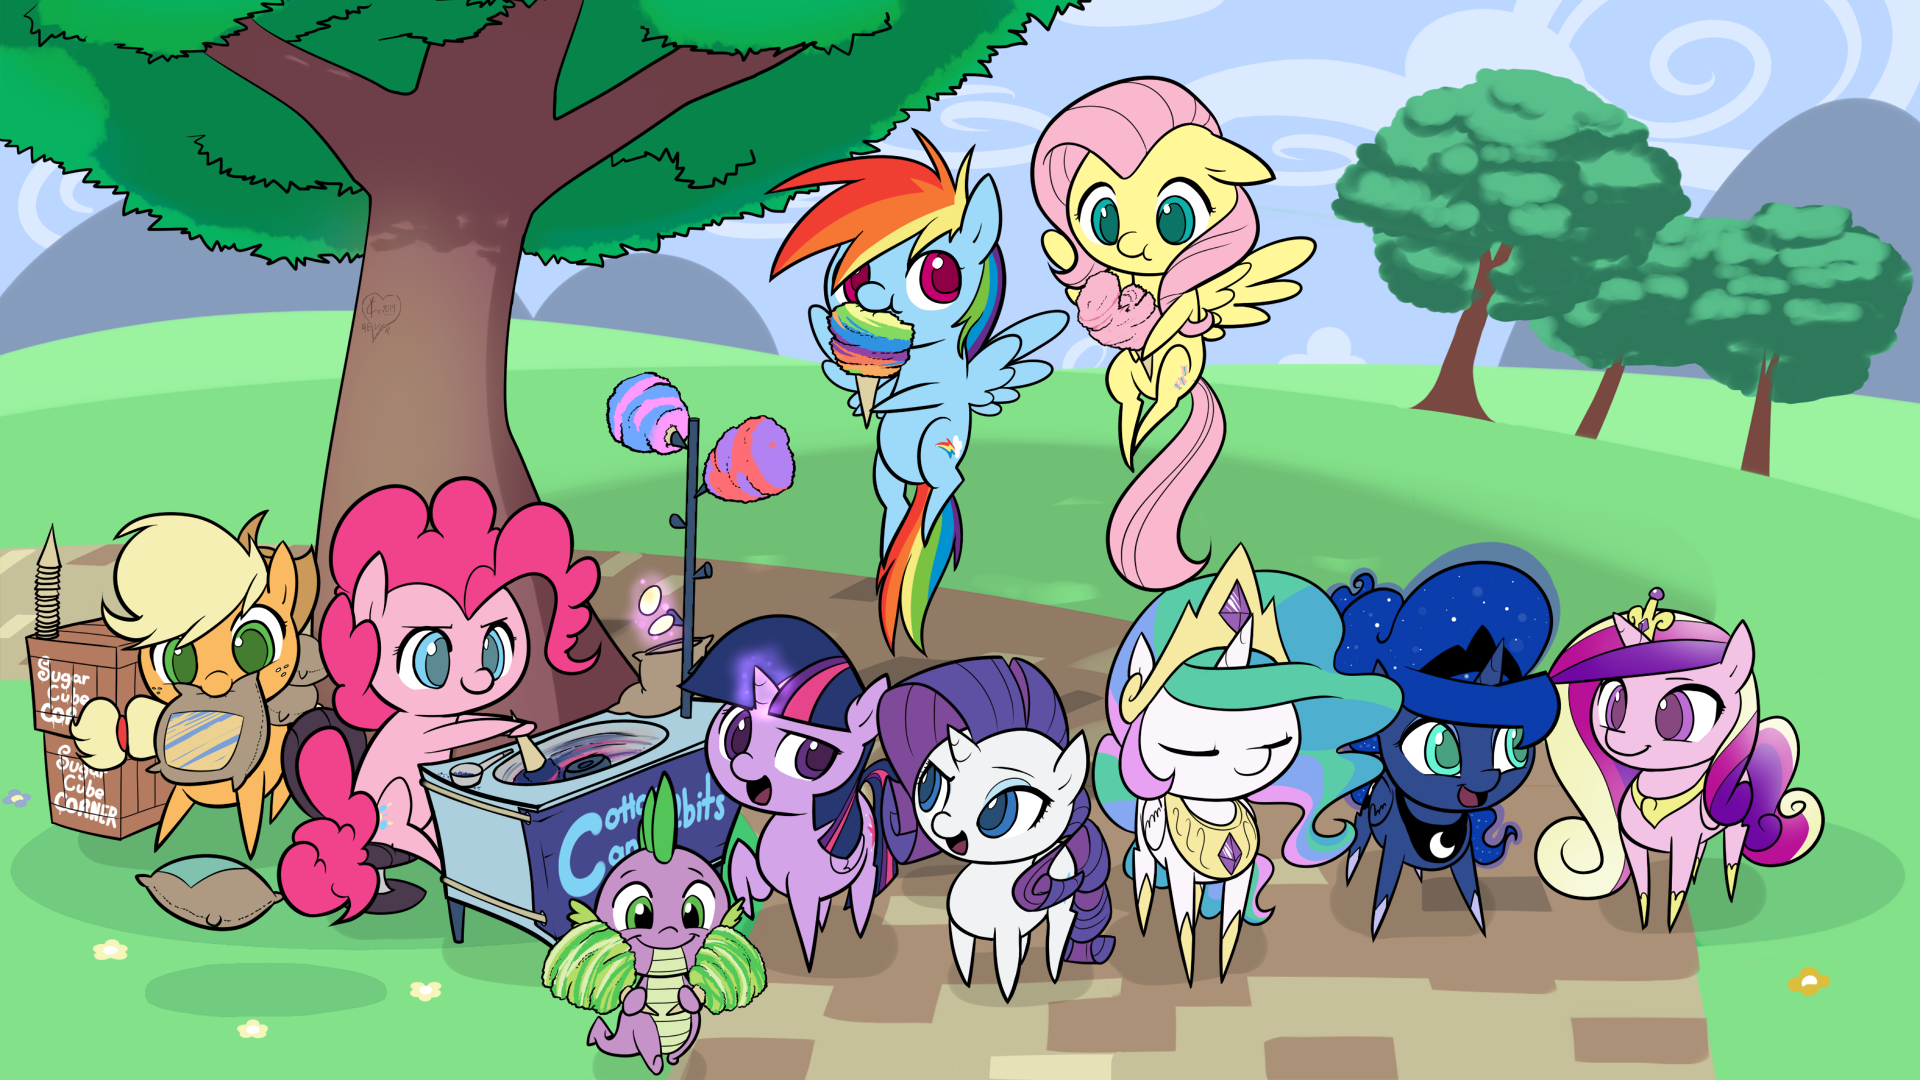 Itteh Bitteh Cotton Candy Selling Committeh by Dreatos